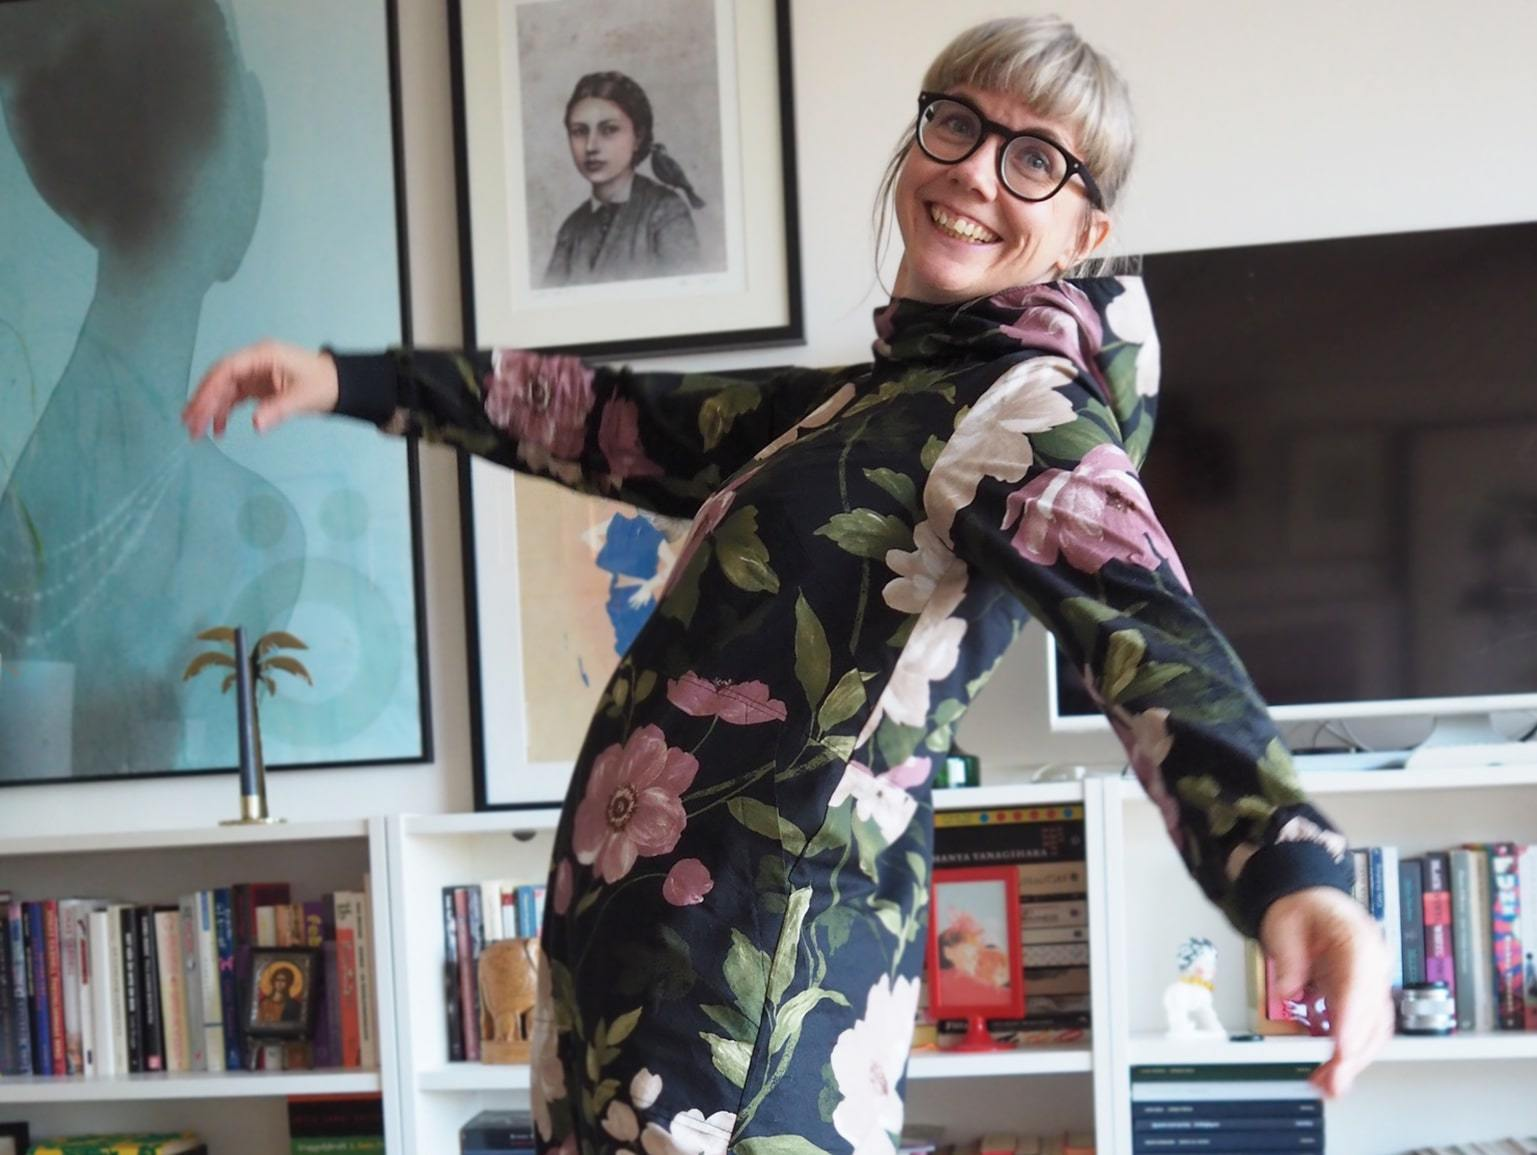 Meet a maker: Slow fashion with Maria Norbäck